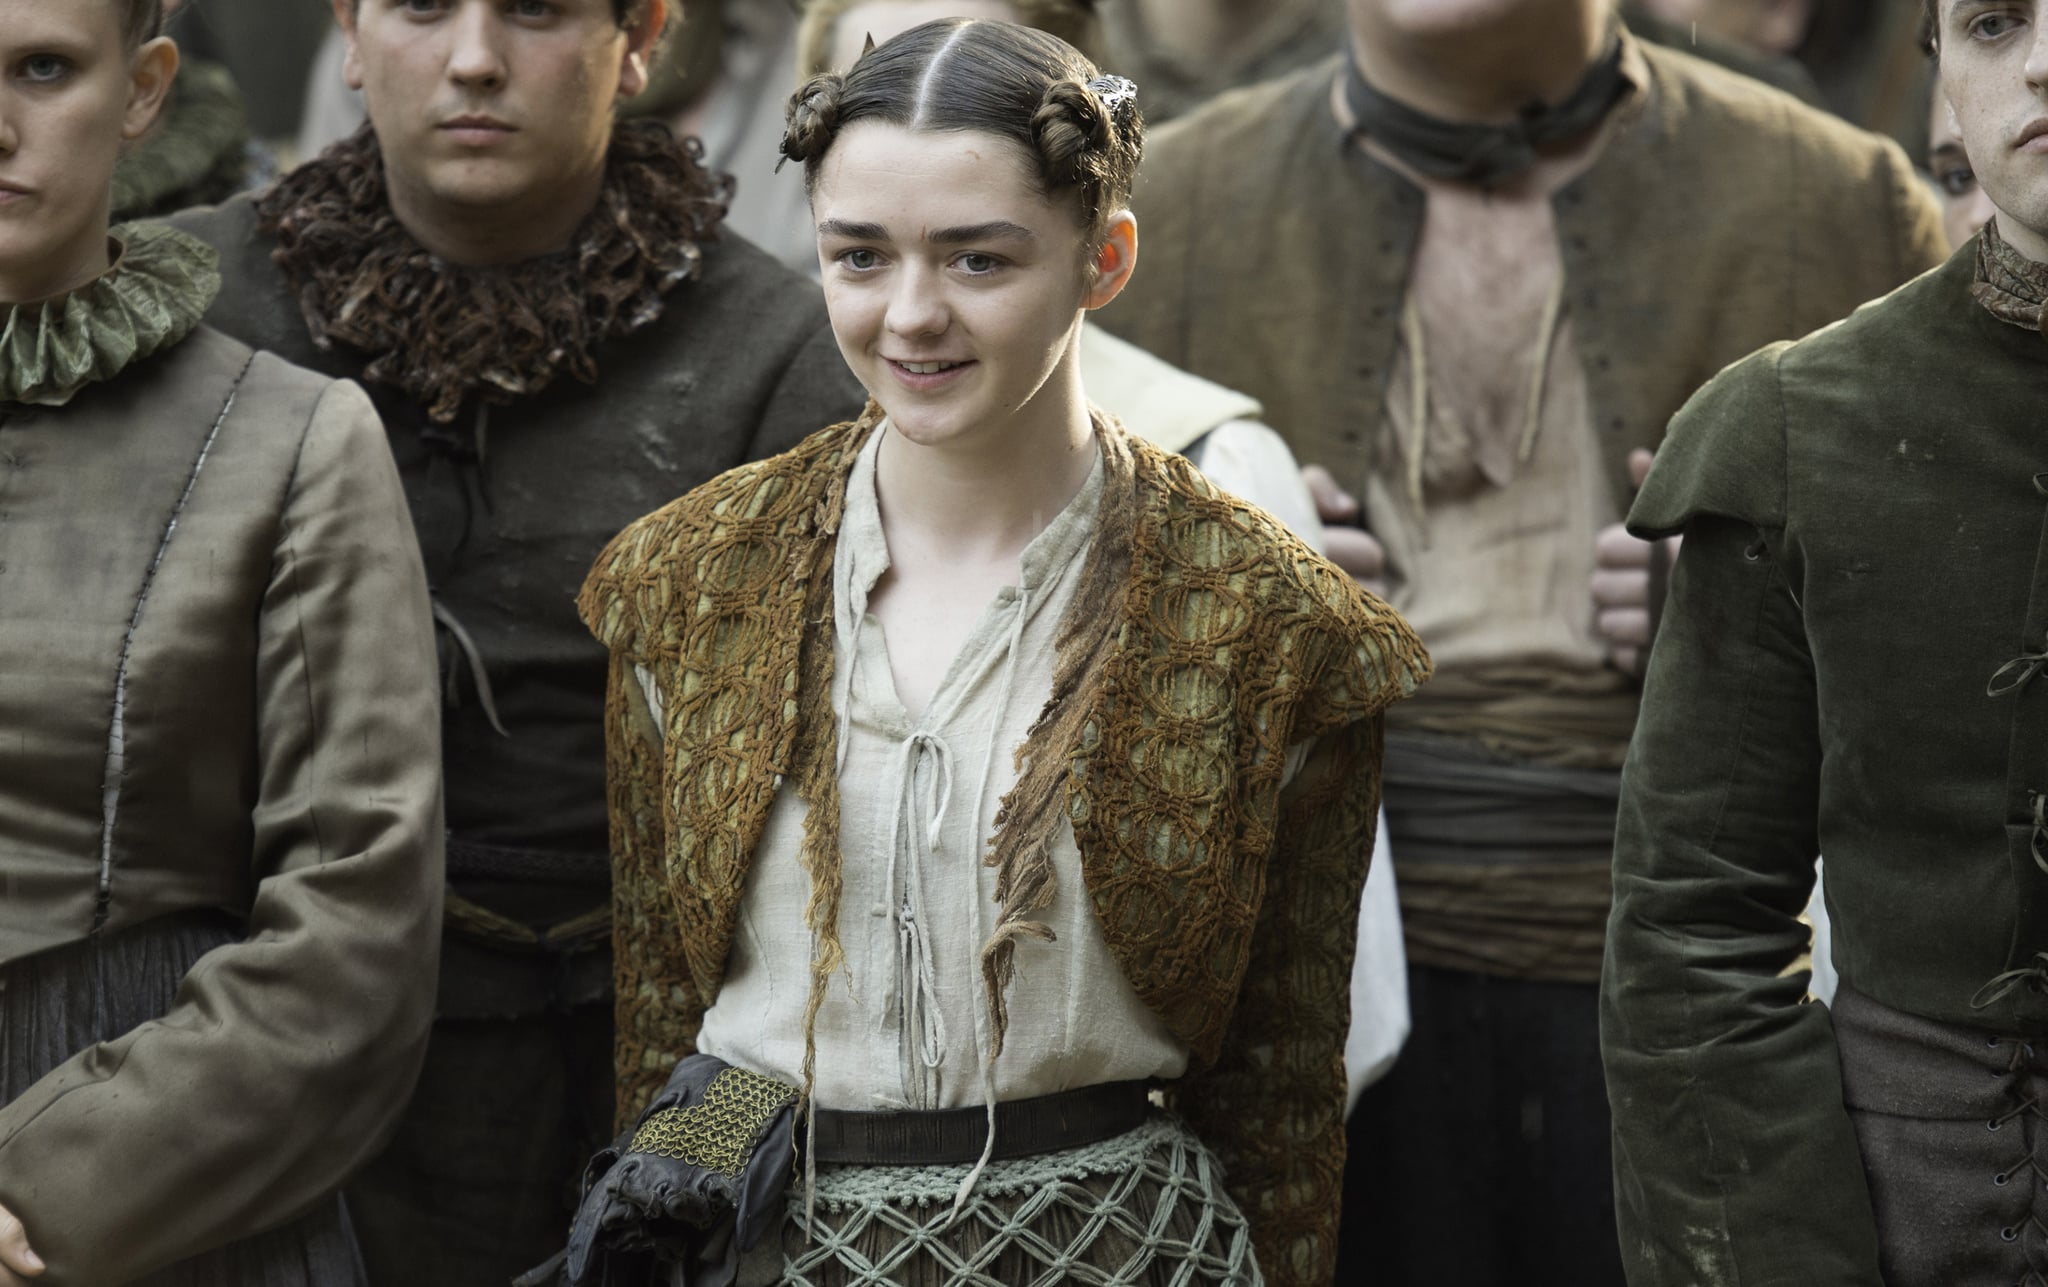 Game Of Thrones trailer leaves fans 'crying with excitement'